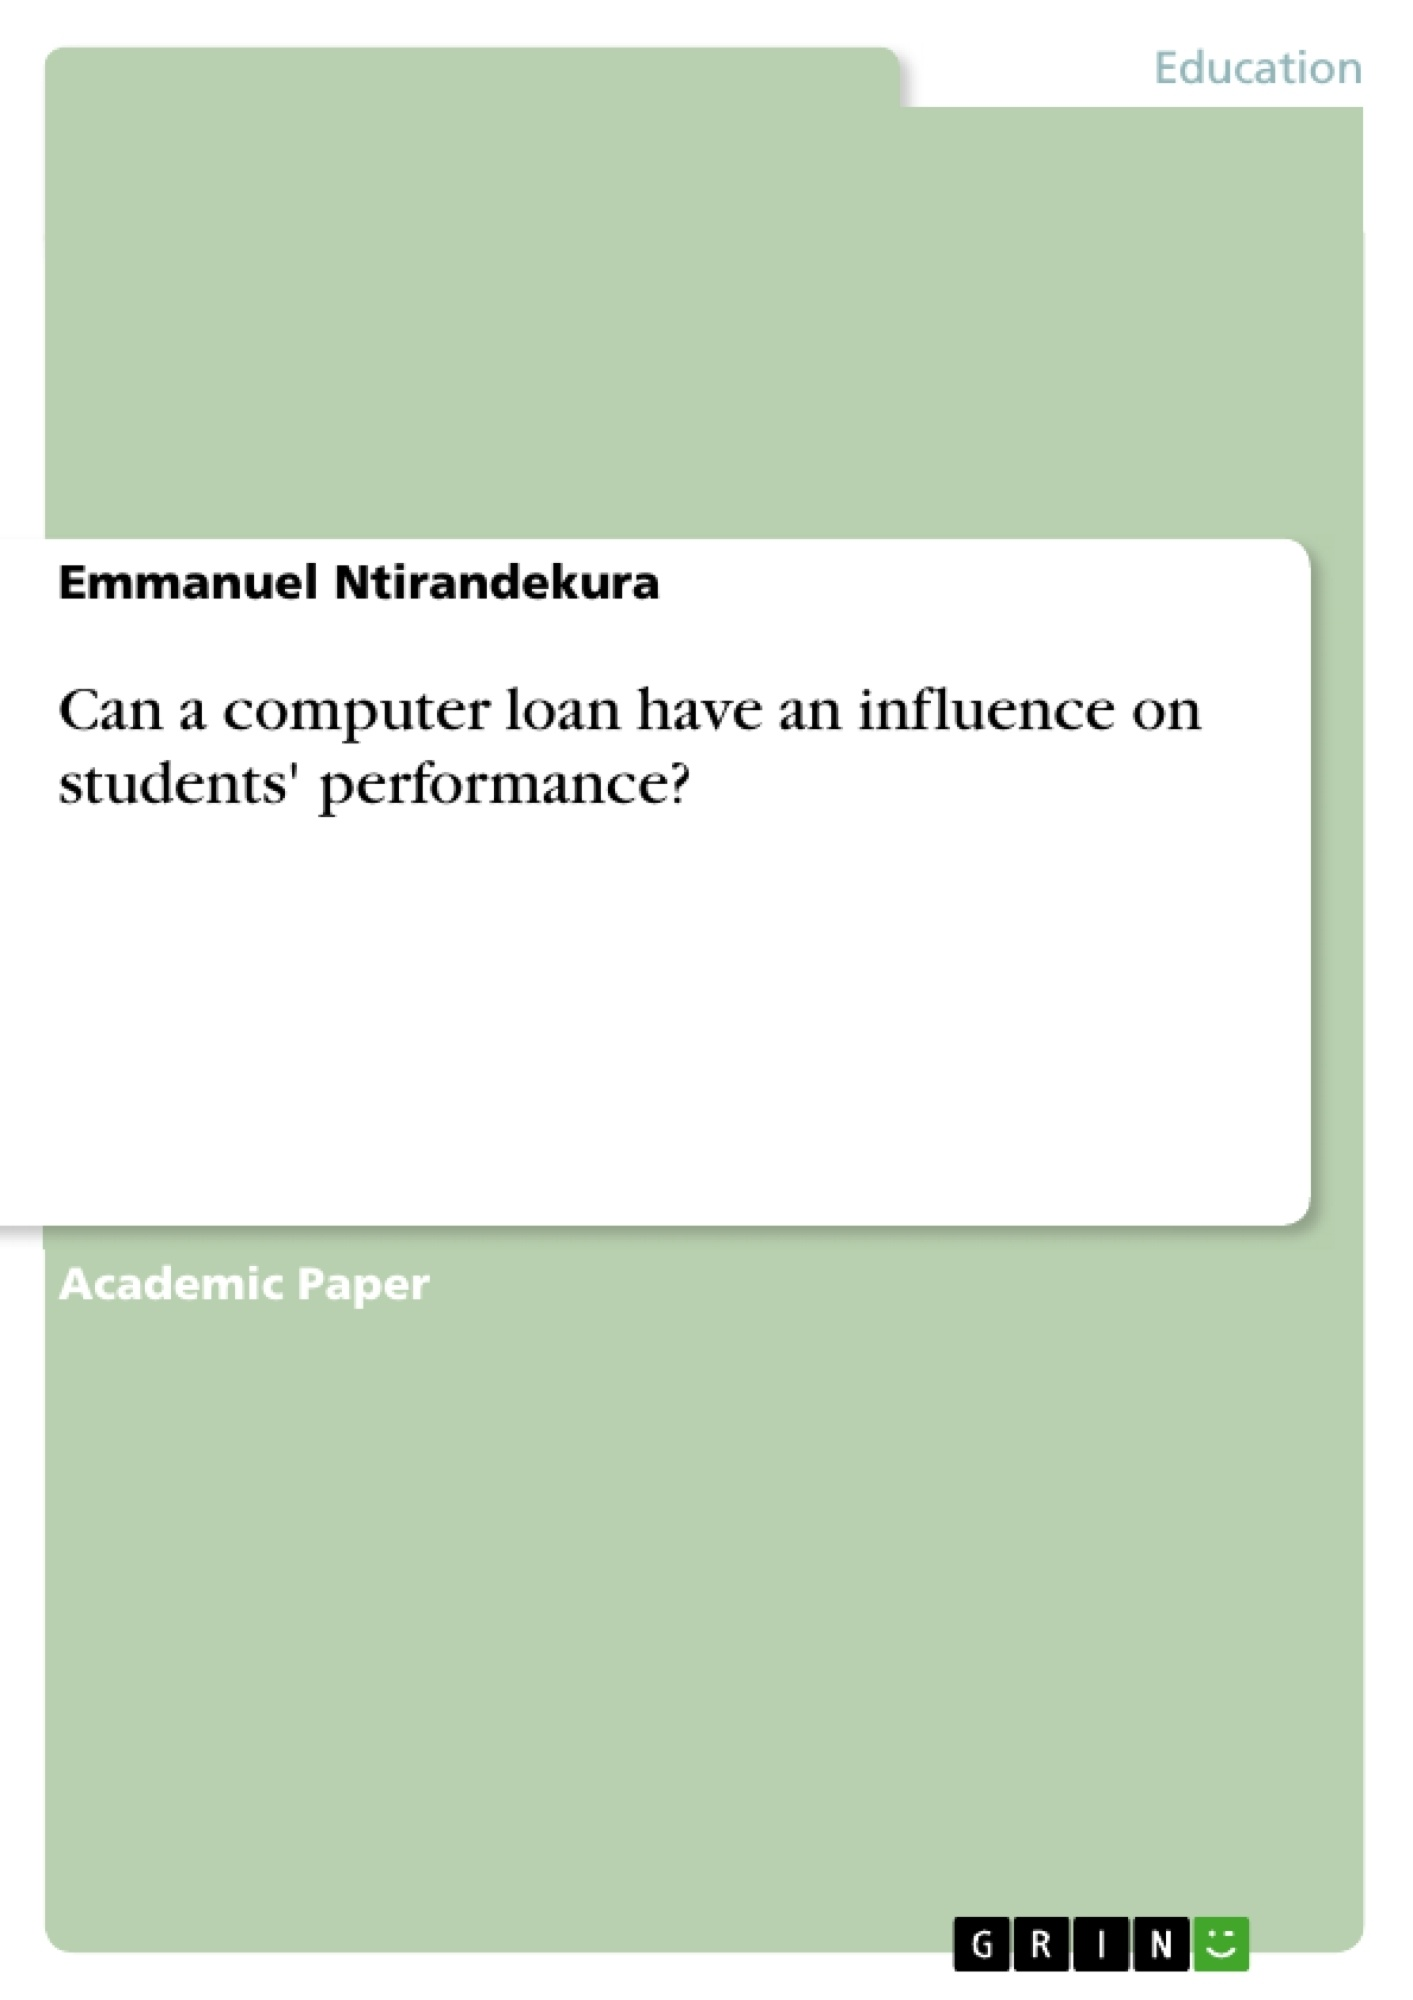 Title: Can a computer loan have an influence on students' performance?